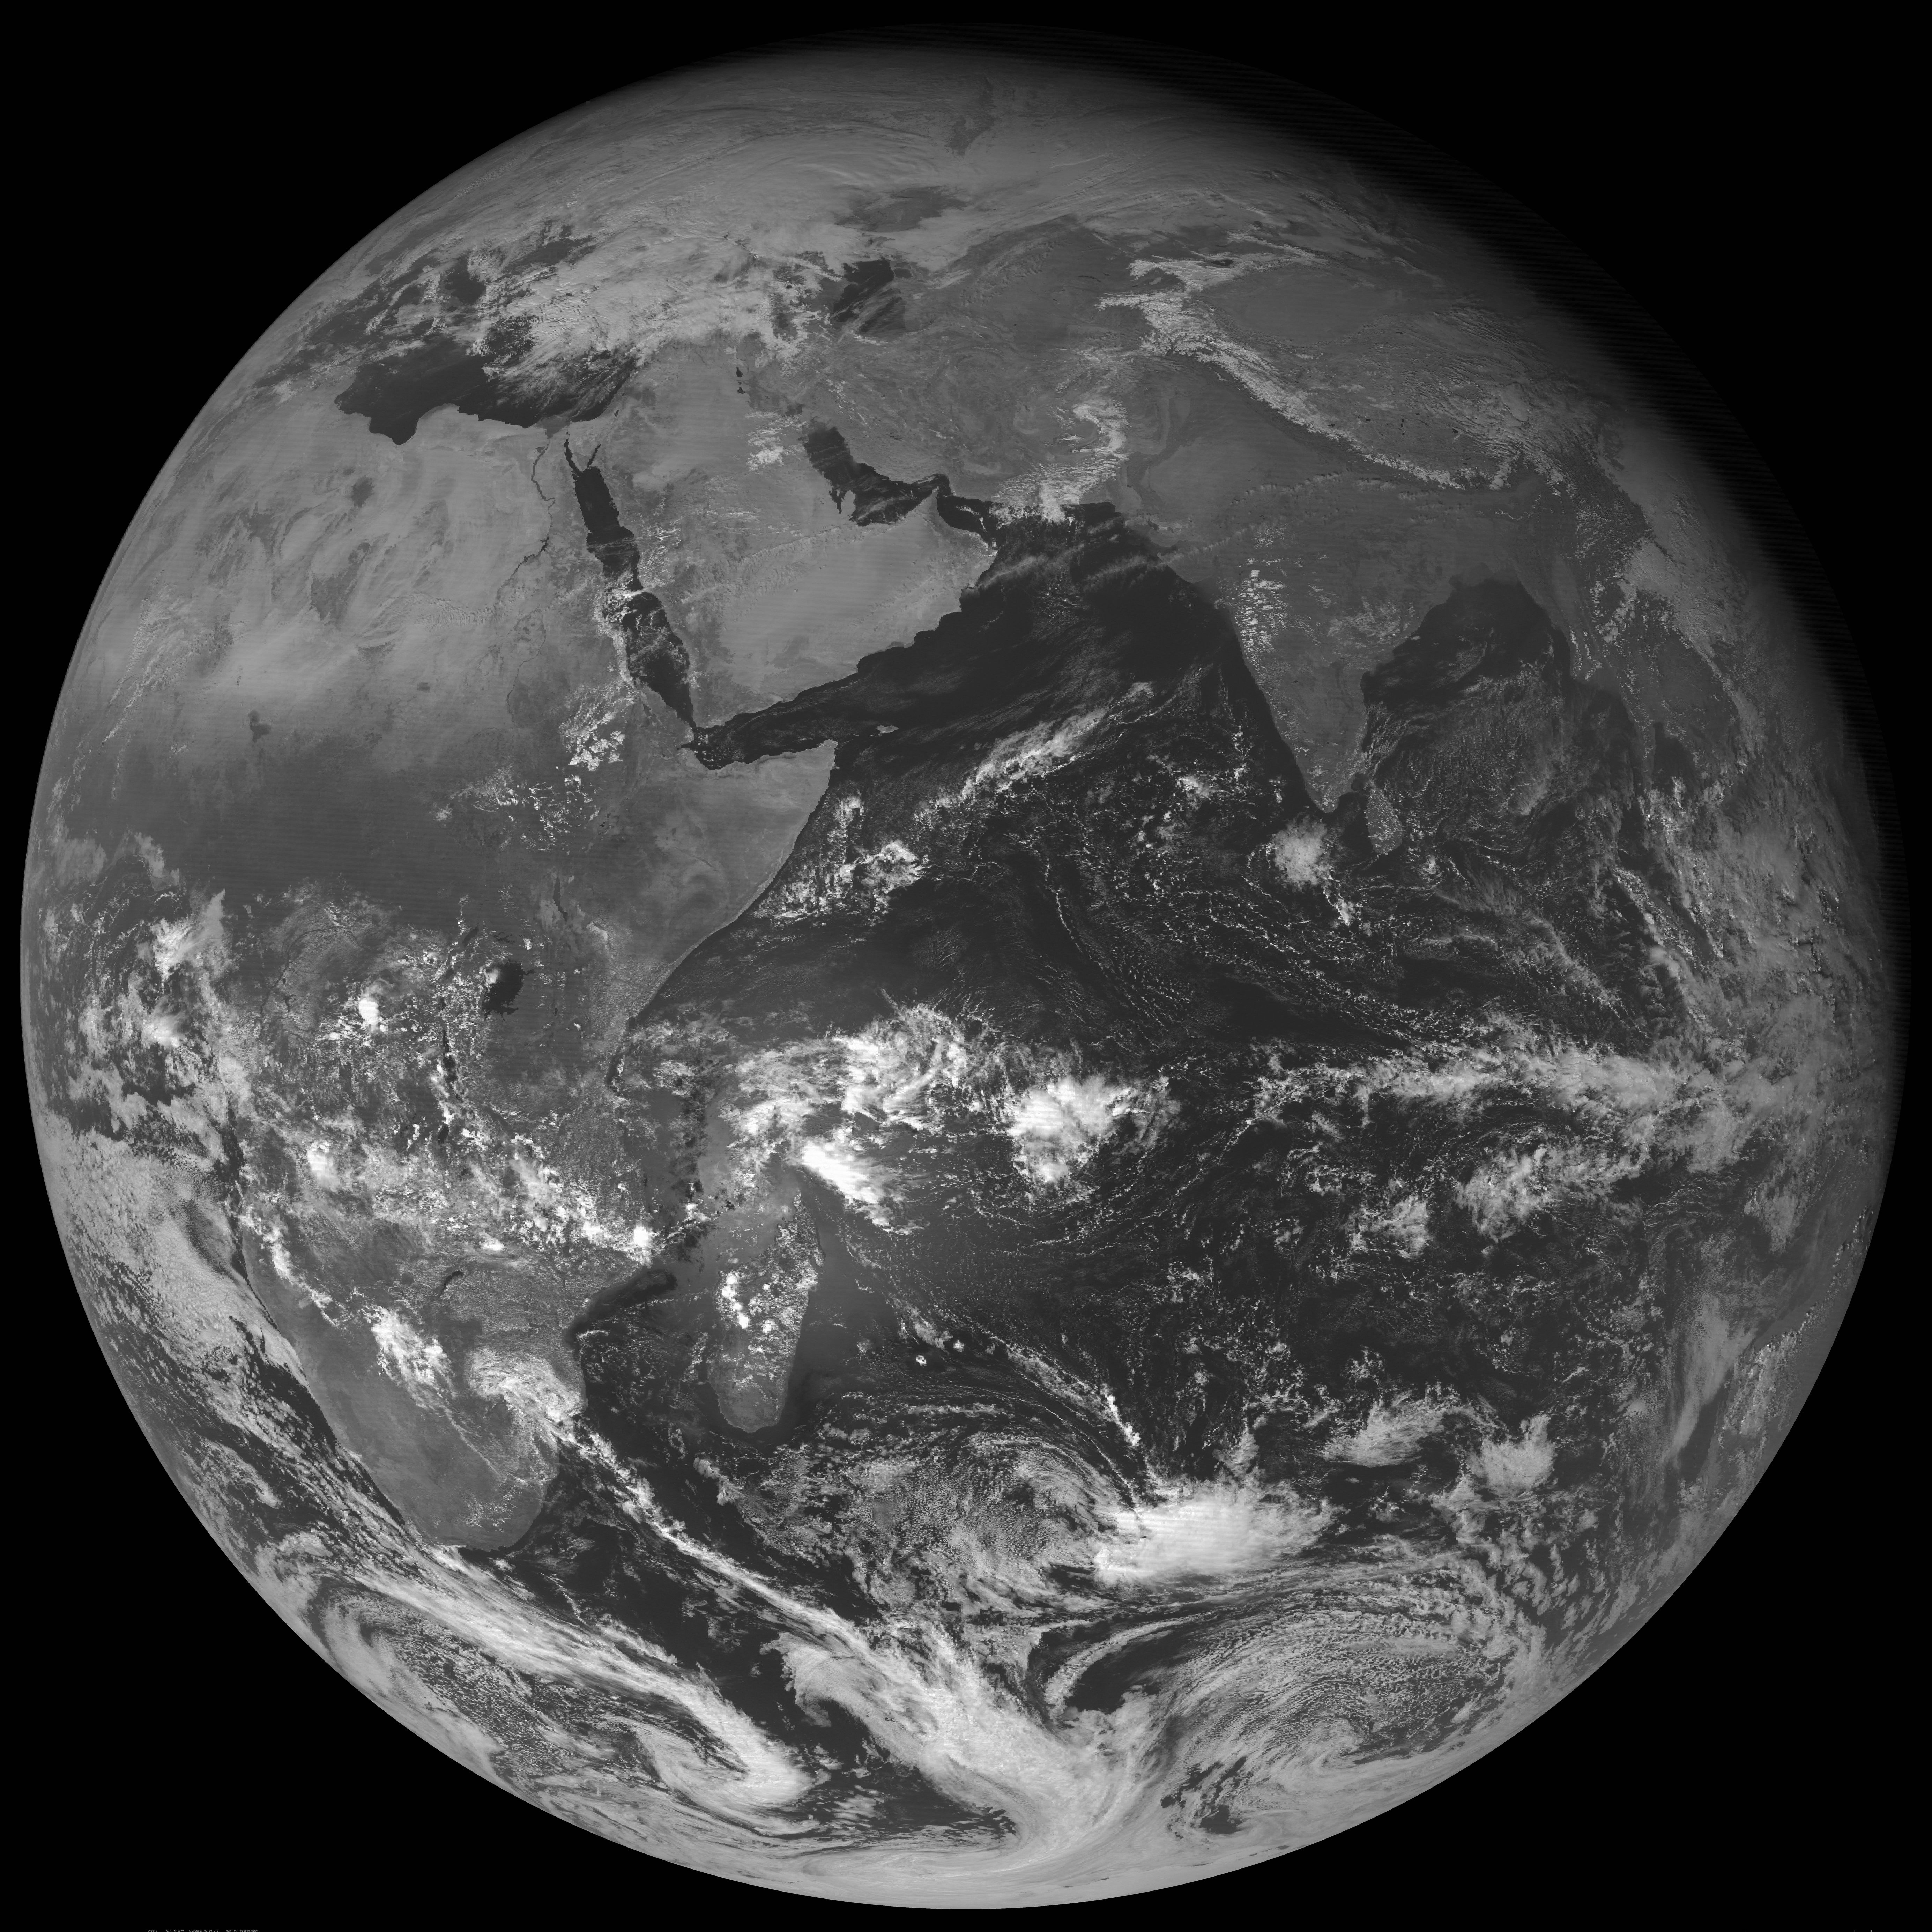 GOES-1 Visible (0.65 µm) image, 0930 UTC on 01 January 1979 [click to enlarge]